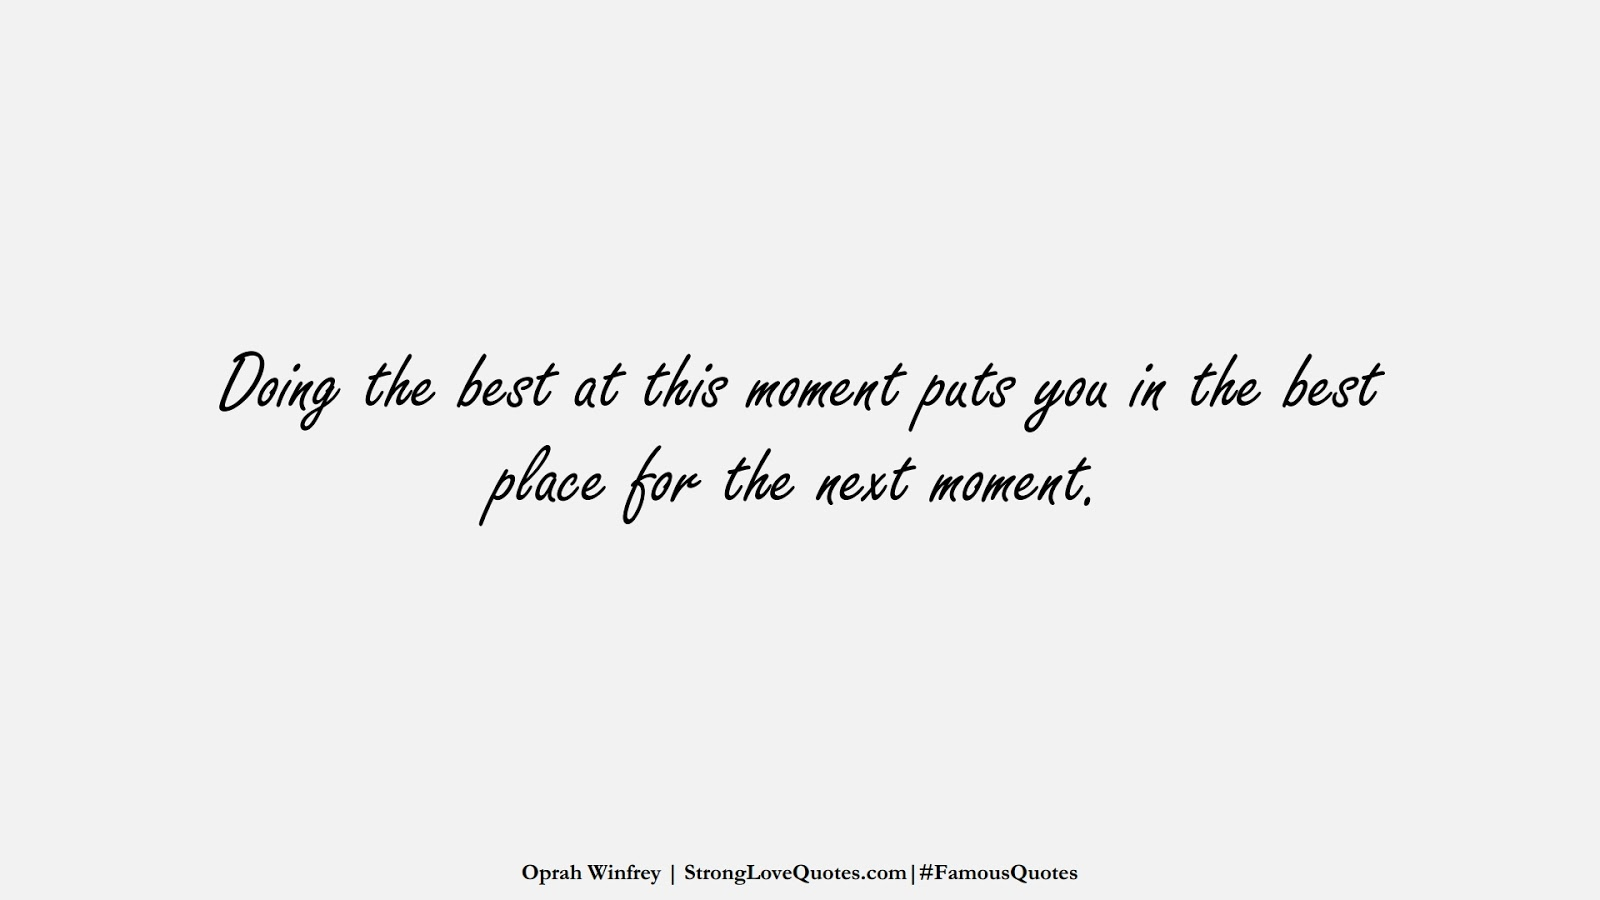 Doing the best at this moment puts you in the best place for the next moment. (Oprah Winfrey);  #FamousQuotes